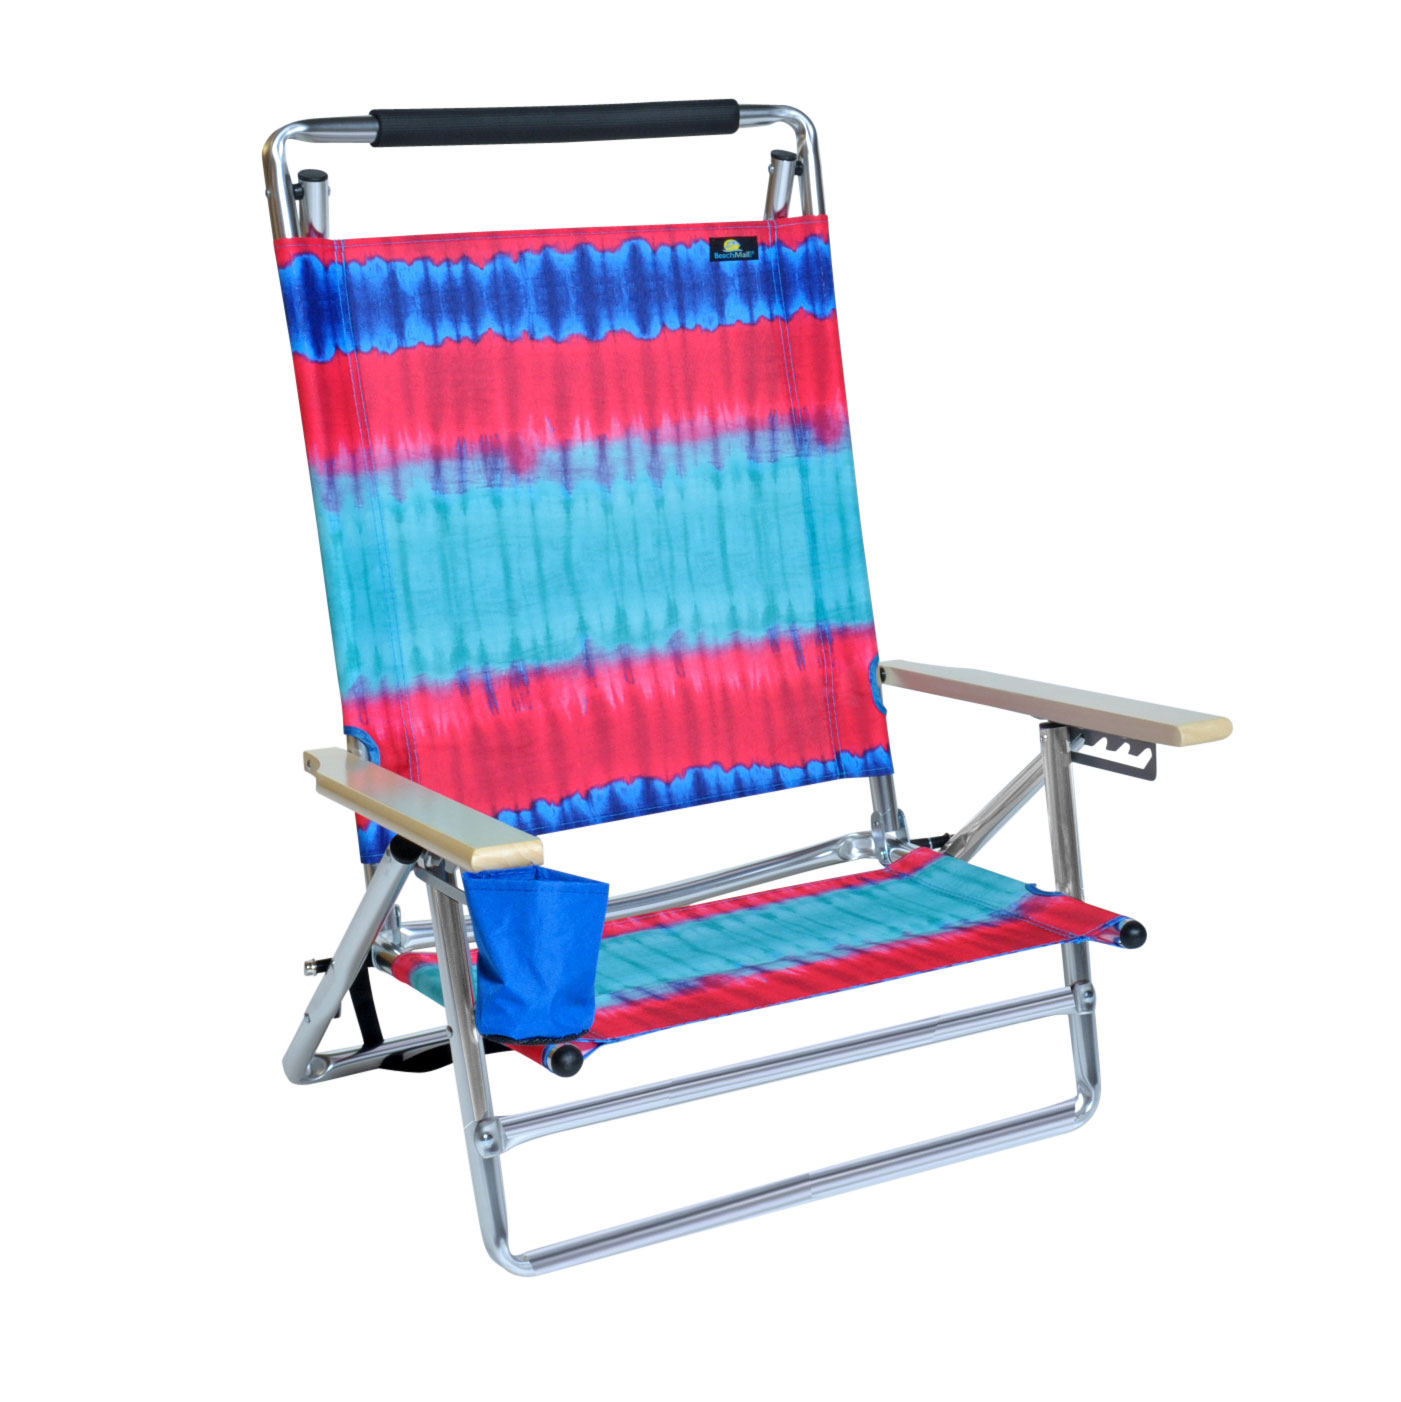 Where To Buy Beach Chairs Deluxe 5 Pos Lay Flat Aluminum Beach Chair W Cup Holder 250 Lb